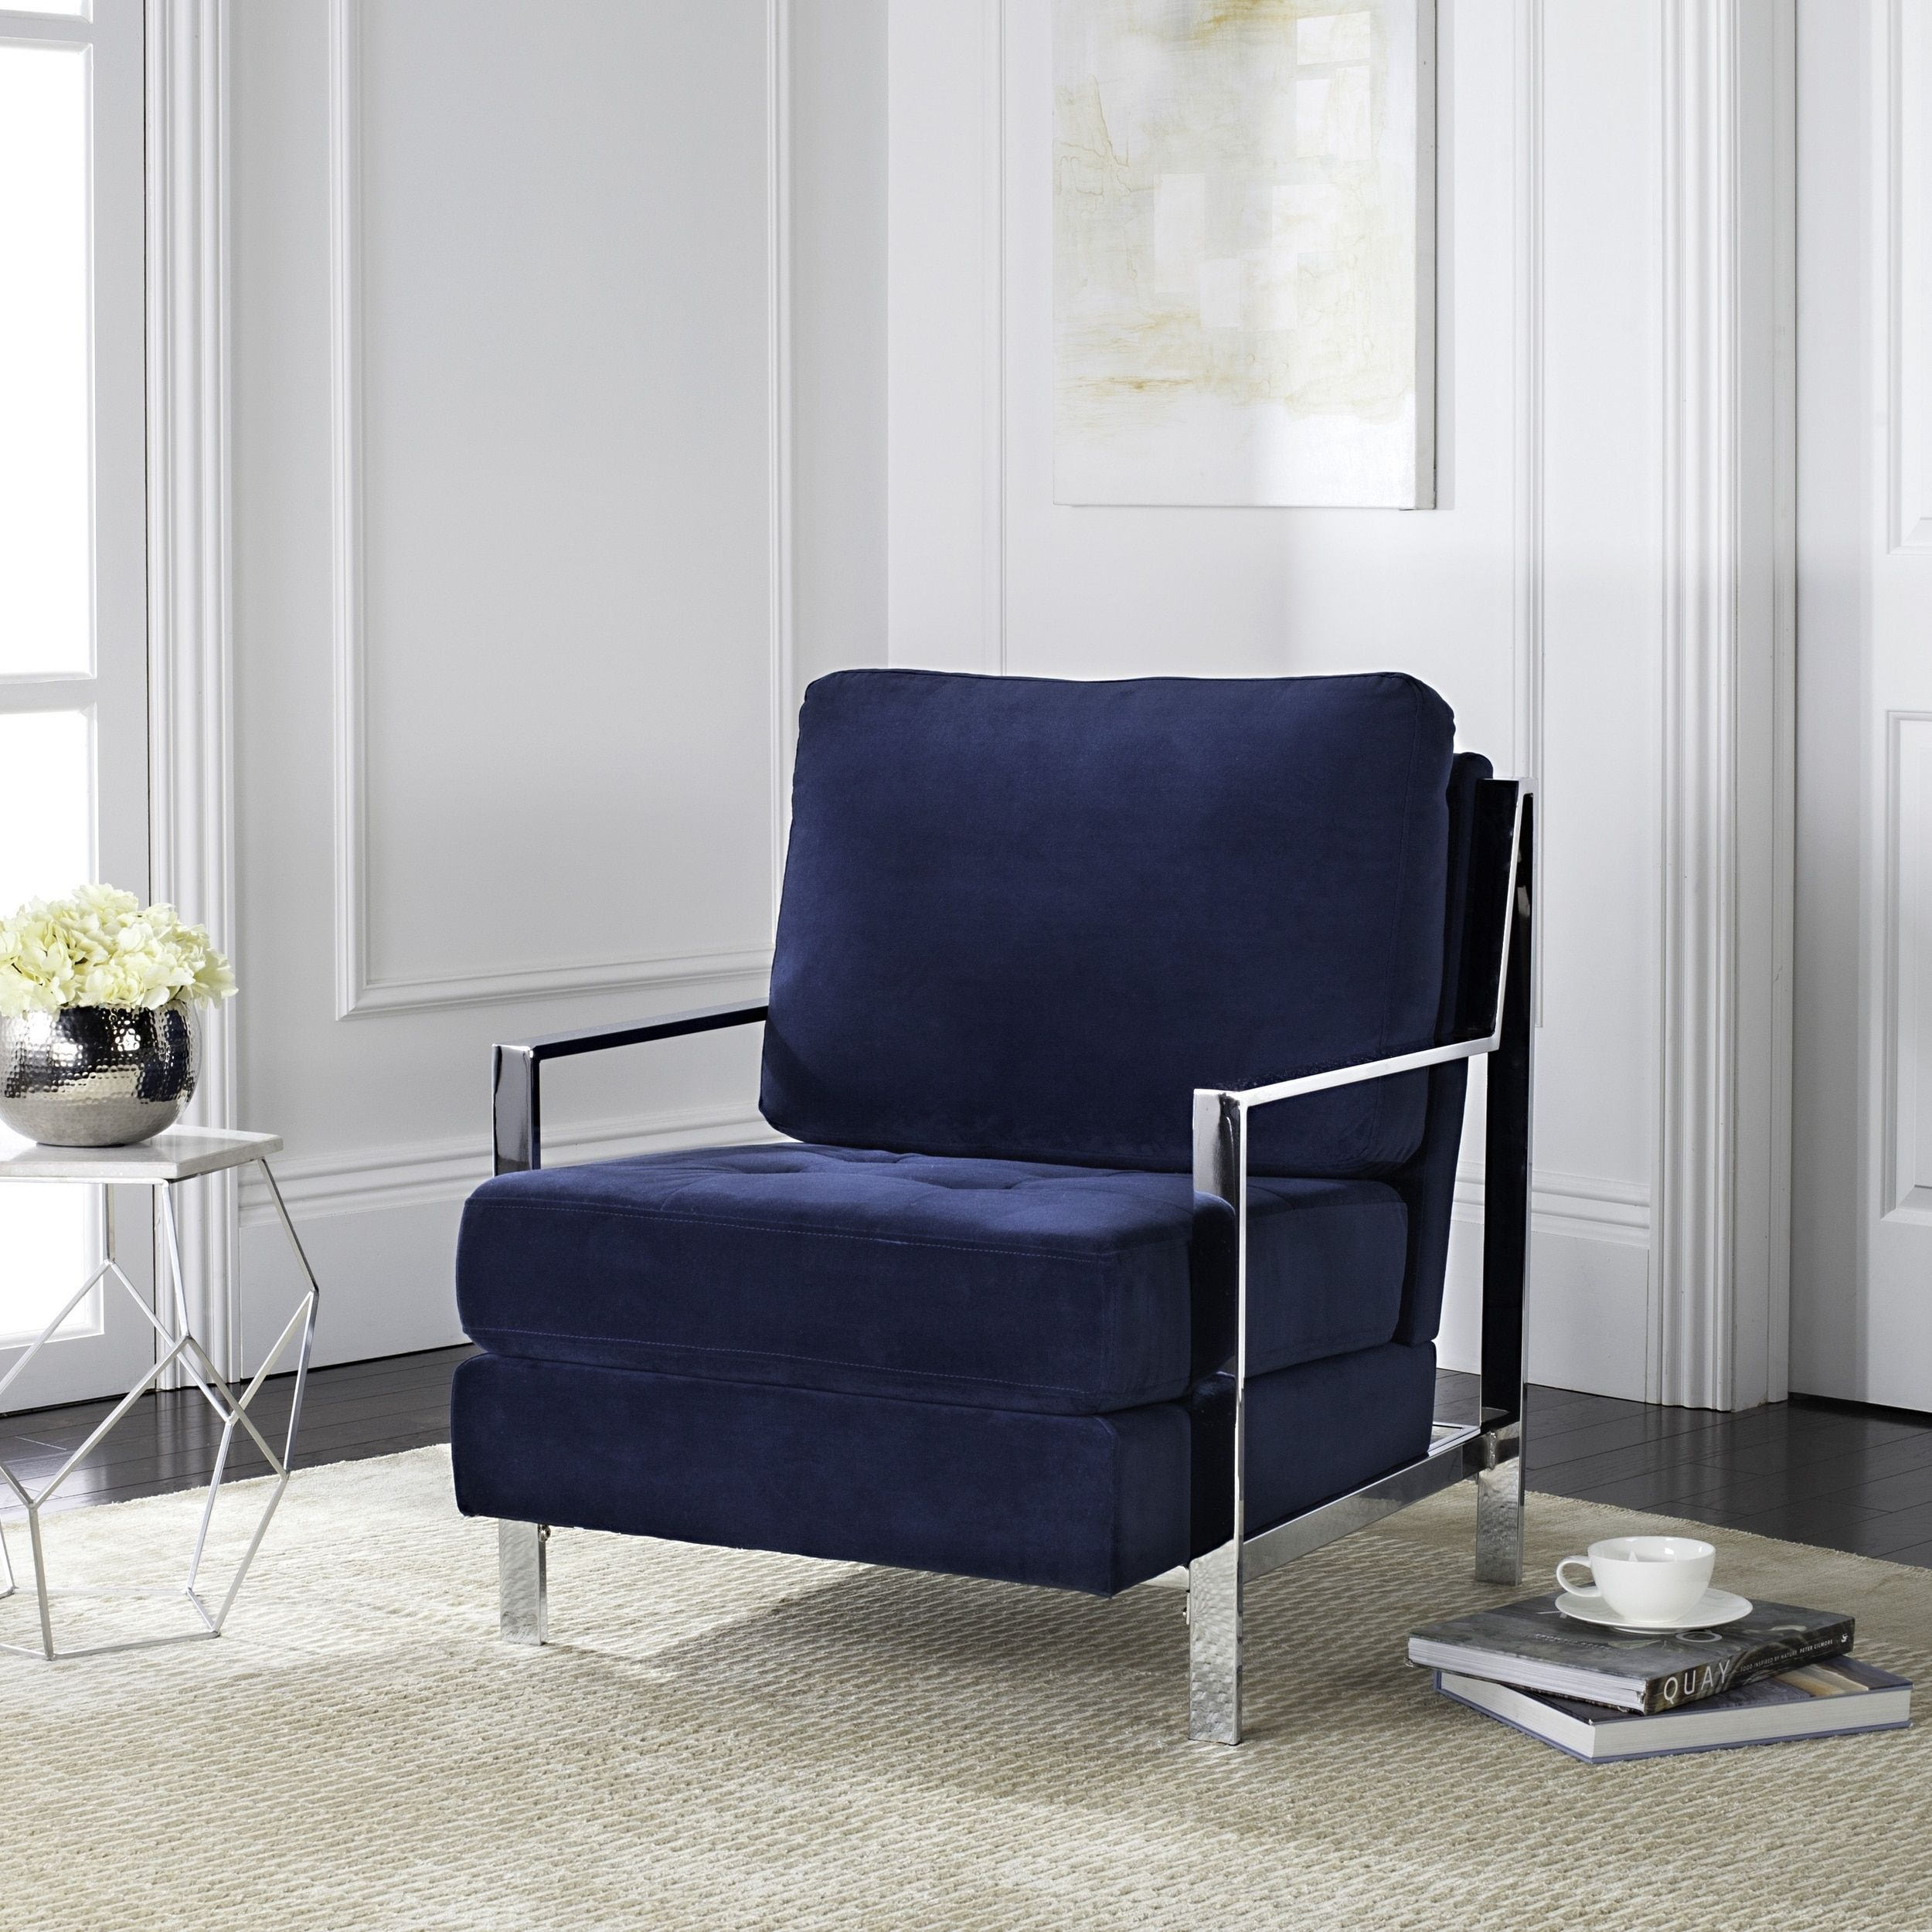 Safavieh Modern Walden Tufted Blue Velvet Accent Chair Fox6279b Fabric